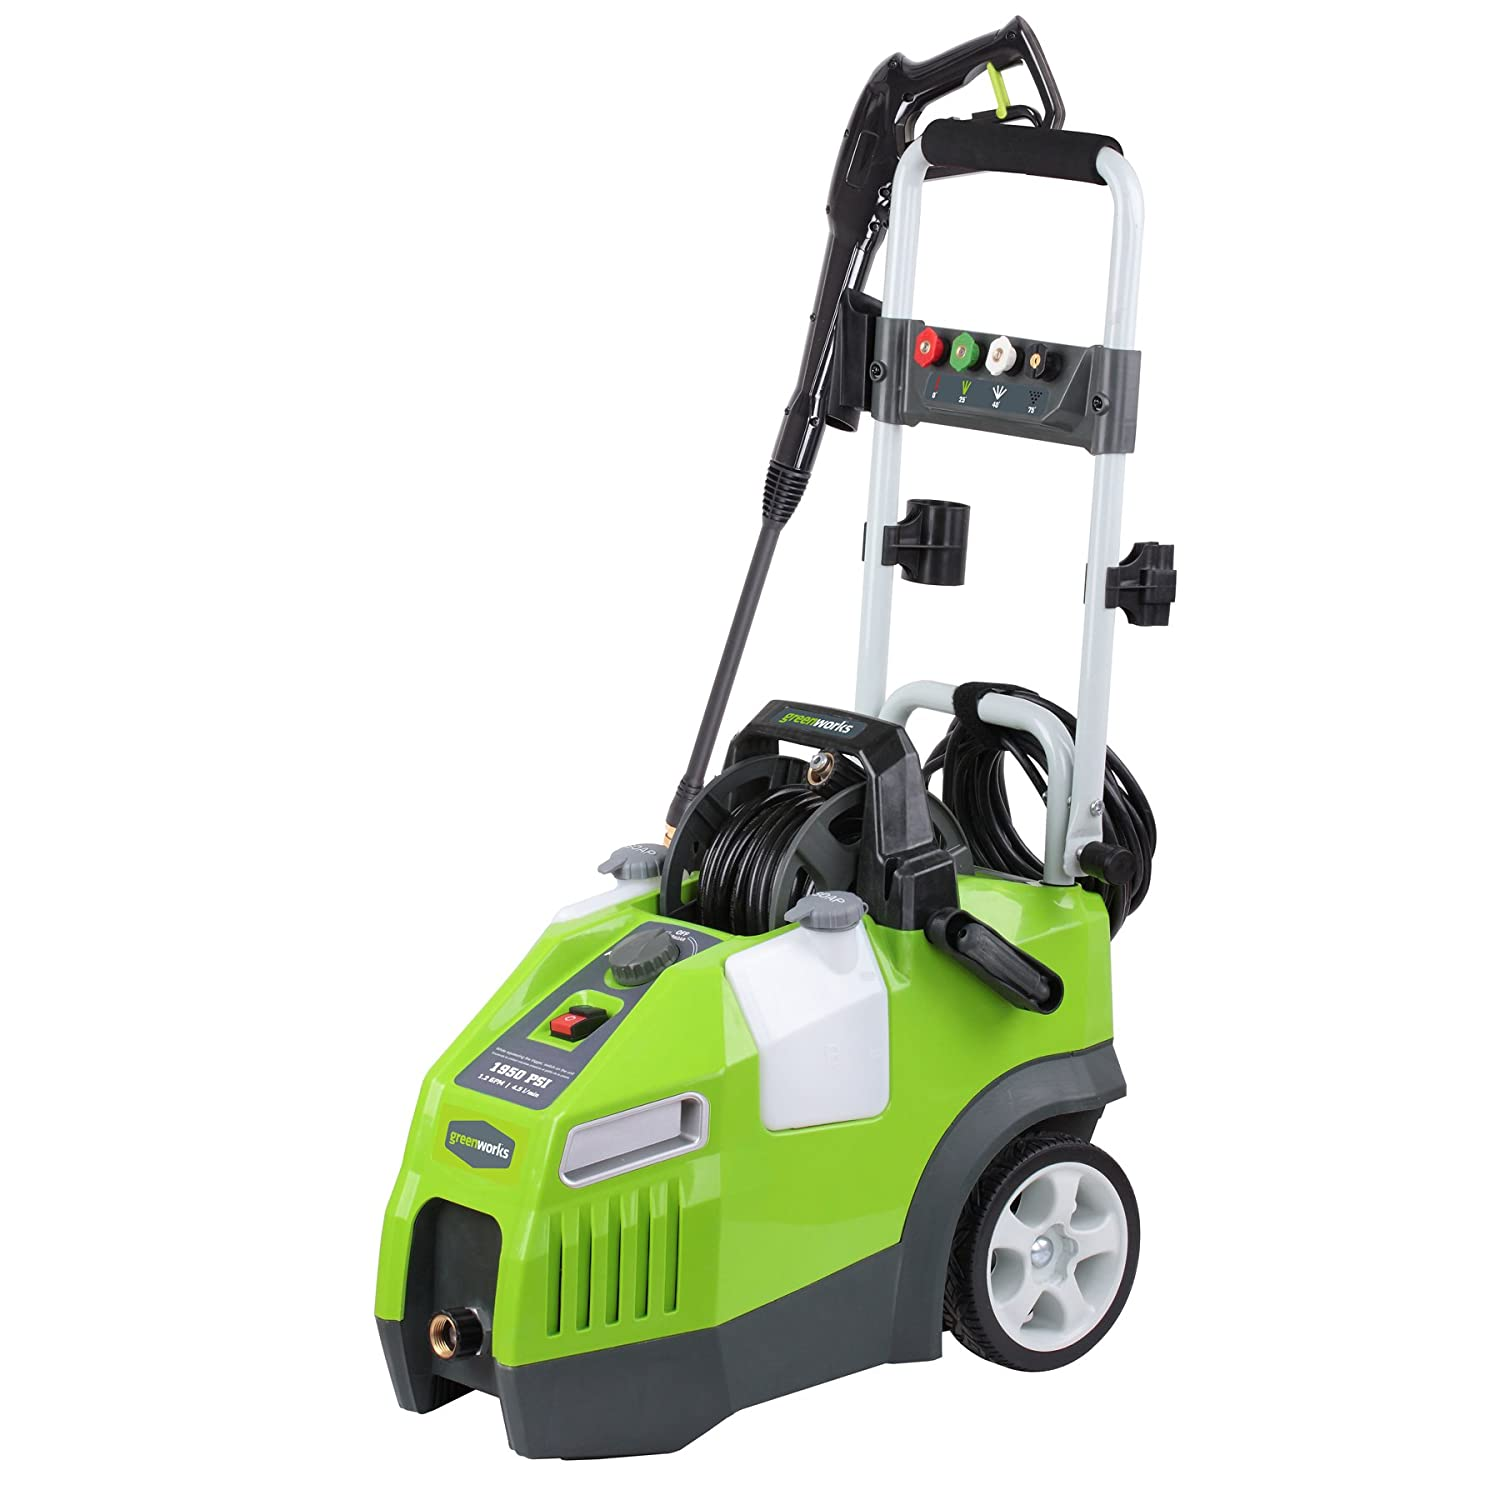 Greenworks 1950 PSI Pressure Washer